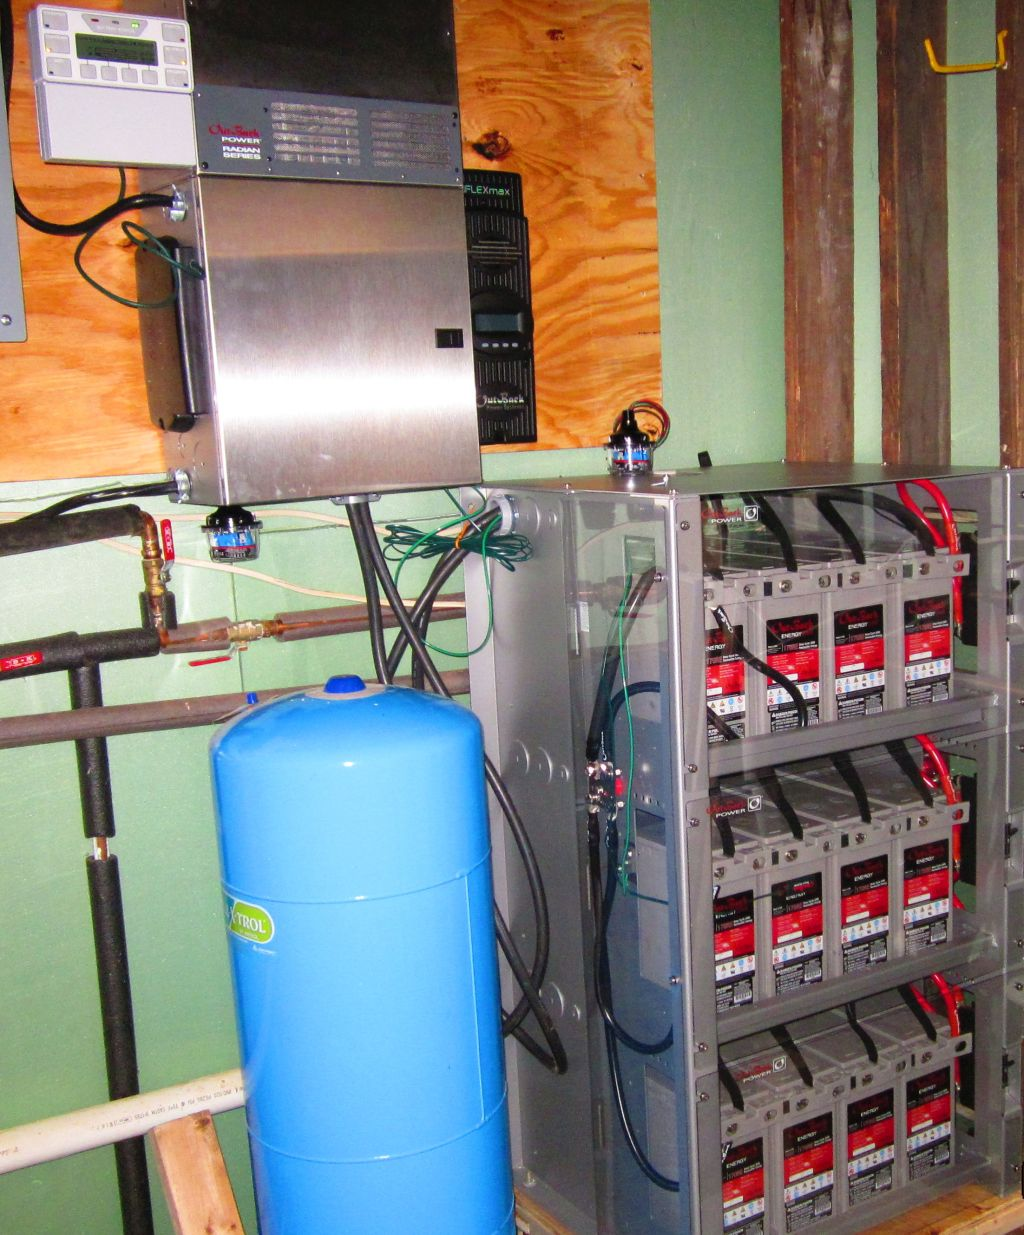 Outback Radian Inverter and Outback Batteries